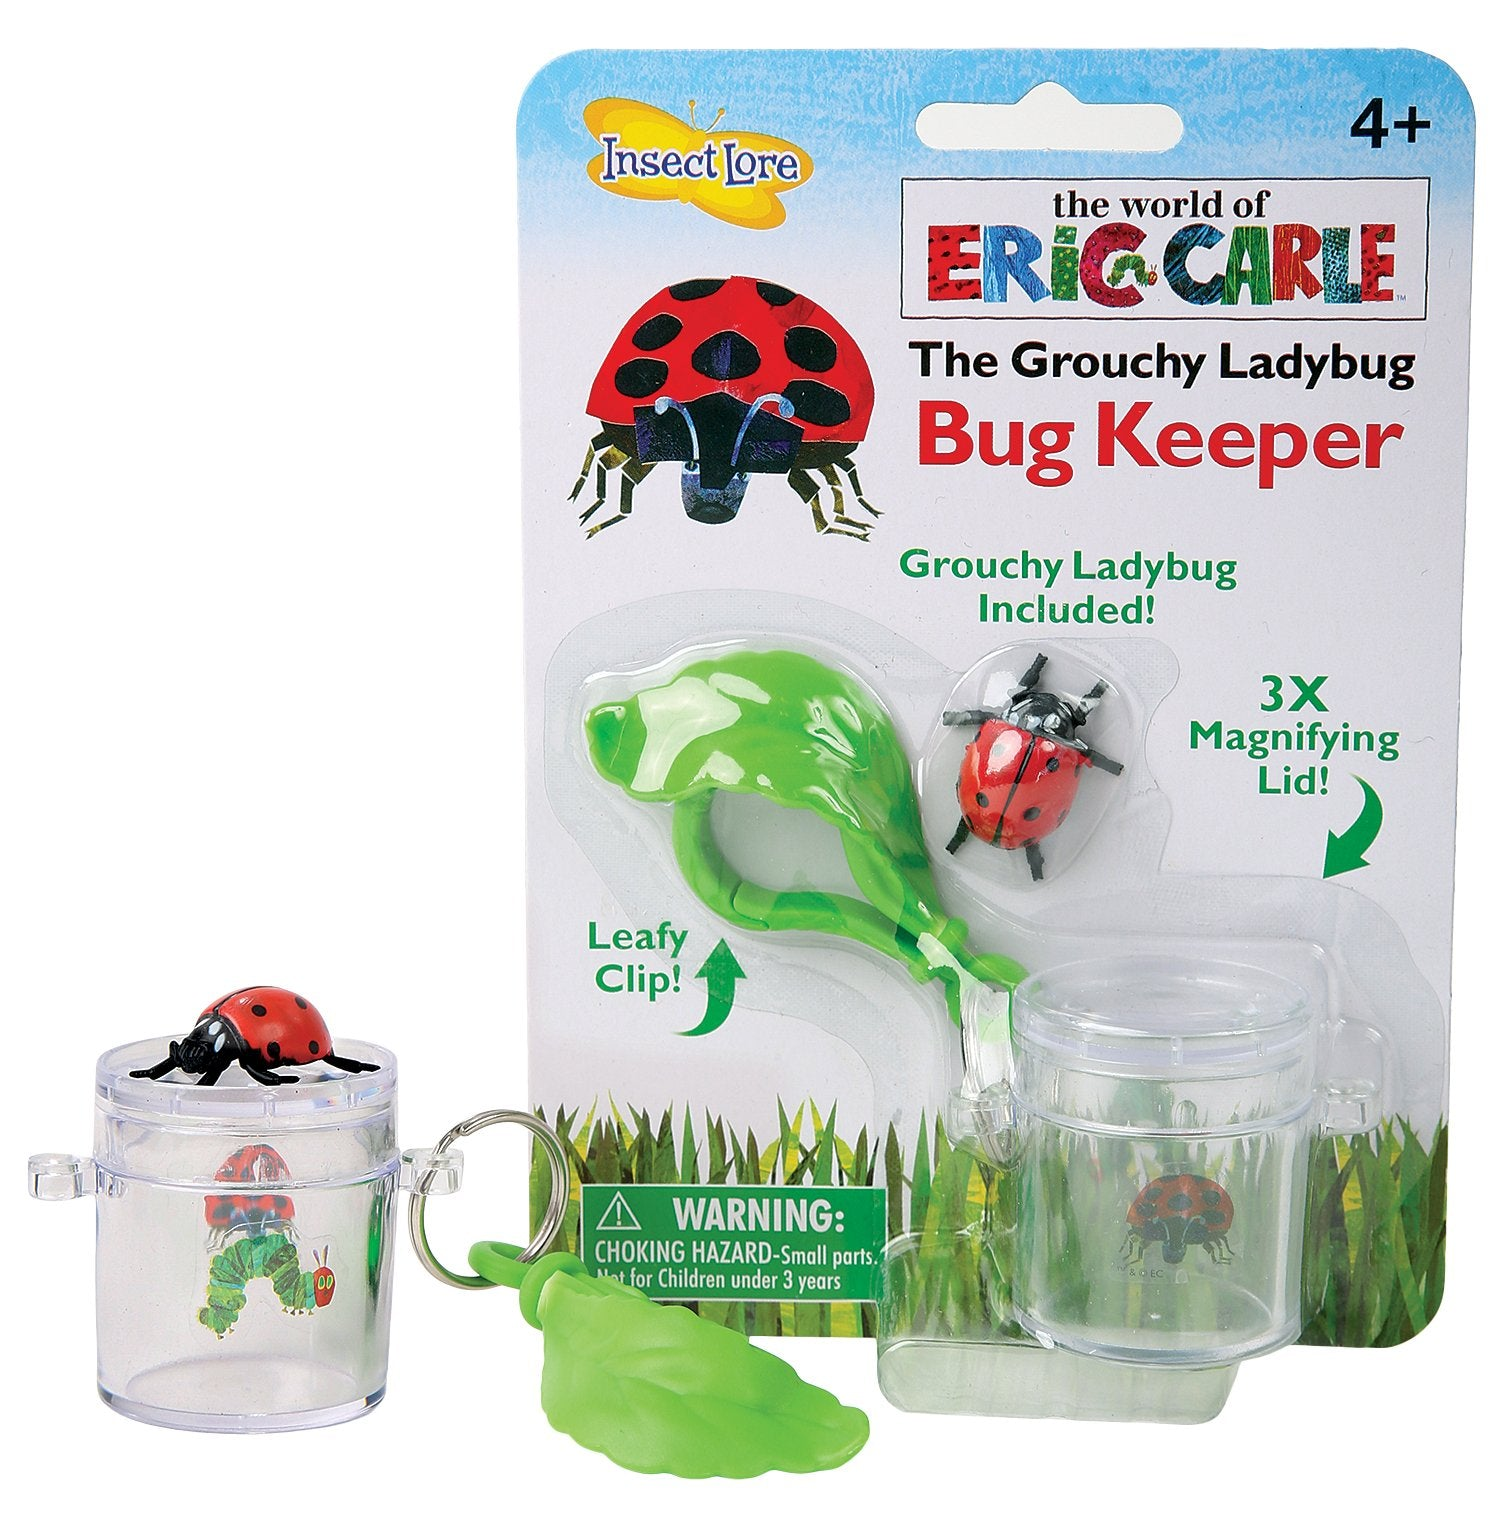 Insect Lore  Grouchy Ladybug Bug Keeper